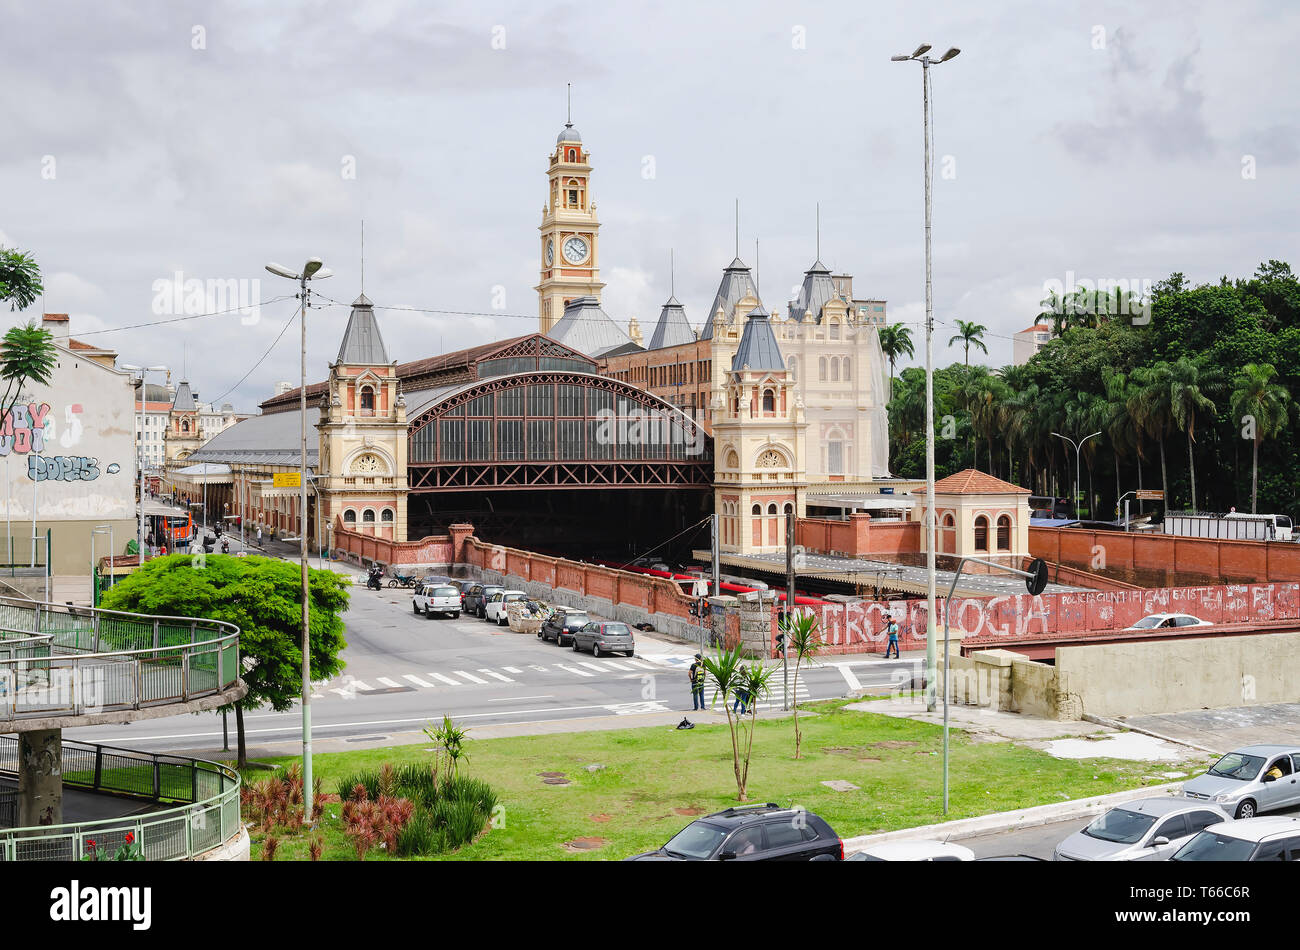 Sao Paulo SP, Brazil - February 27, 2019: Train CPTM, Luz station and the Museum of Portuguese Language on side. Stock Photo